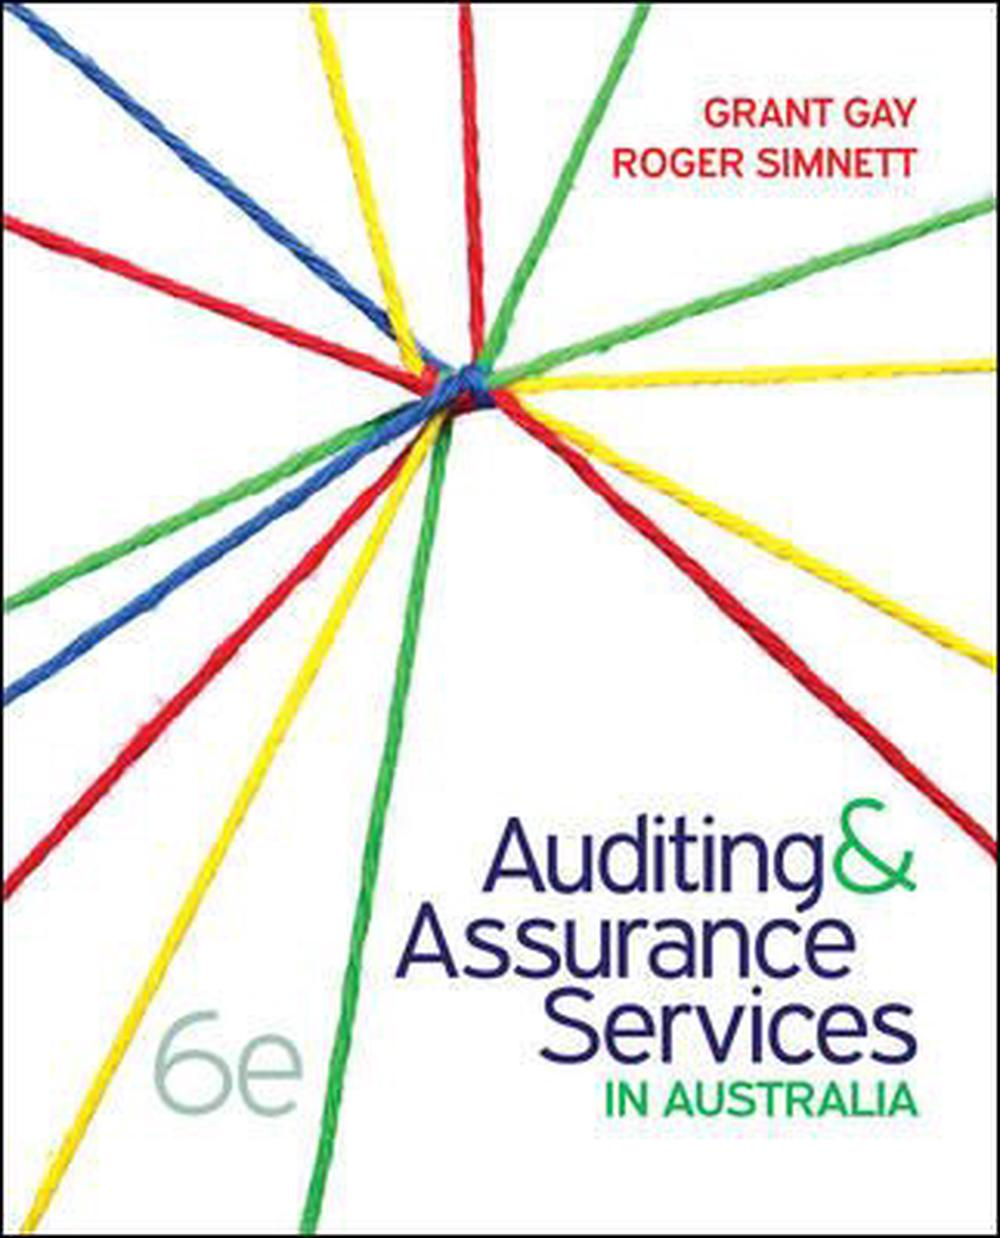 solution to auditing and assurance service Auditing & assurance services  we're committed to providing you with high-value course solutions backed by great service and a team that cares about your success .